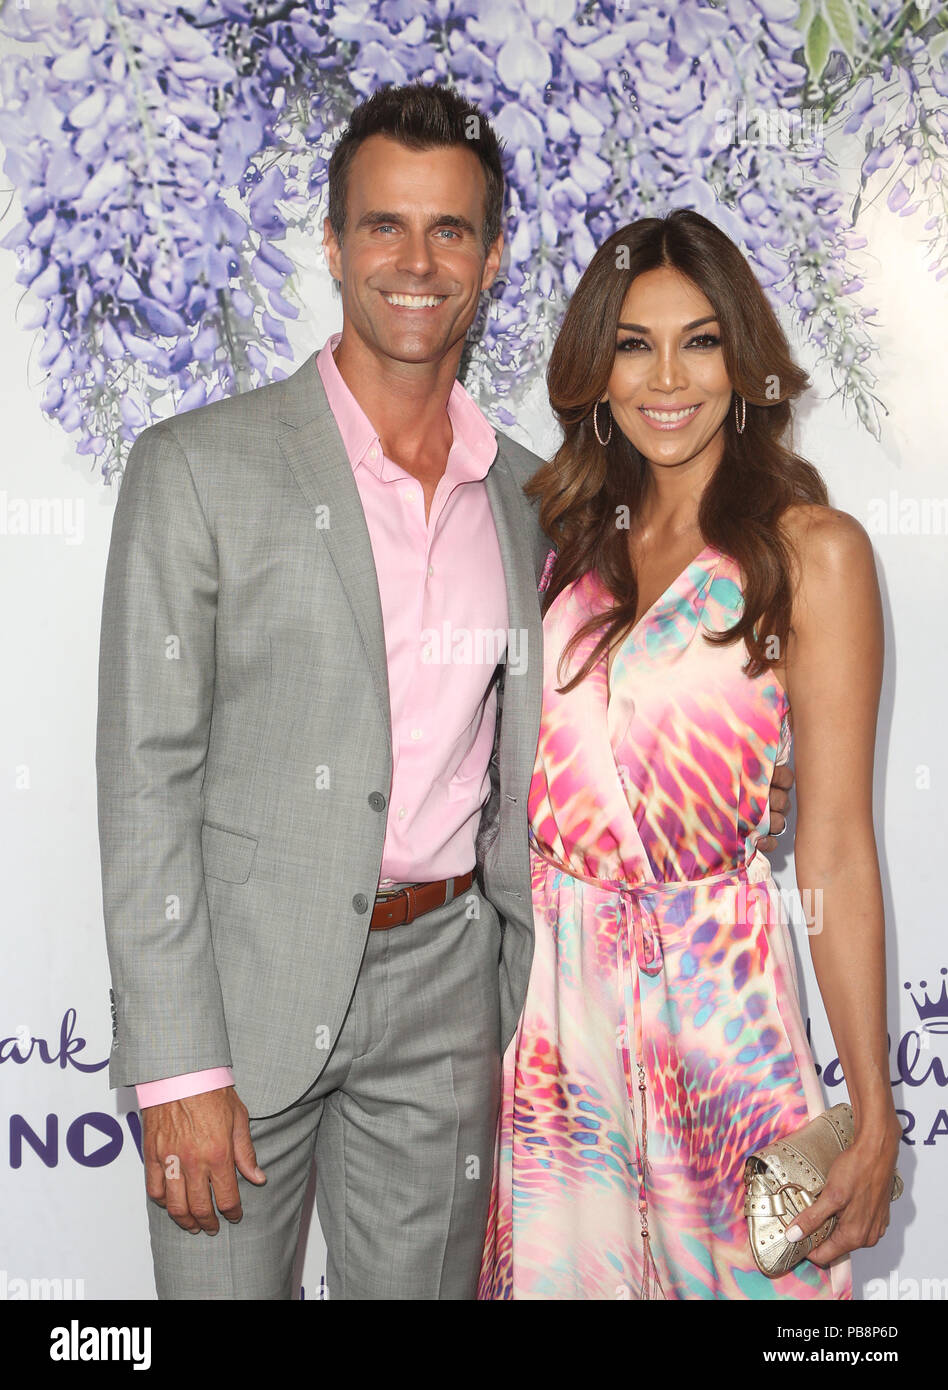 Vanessa Arevalo High Resolution Stock Photography And Images Alamy Vanessa mathison (read 4162 times). https www alamy com beverly hills ca 26th july 2018 cameron mathison vanessa arevalo at the hallmark channel summer 2018 tca press tour event in beverly hills california on july 26 2018 credit faye sadoumediapunch credit mediapunch incalamy live news image213478677 html